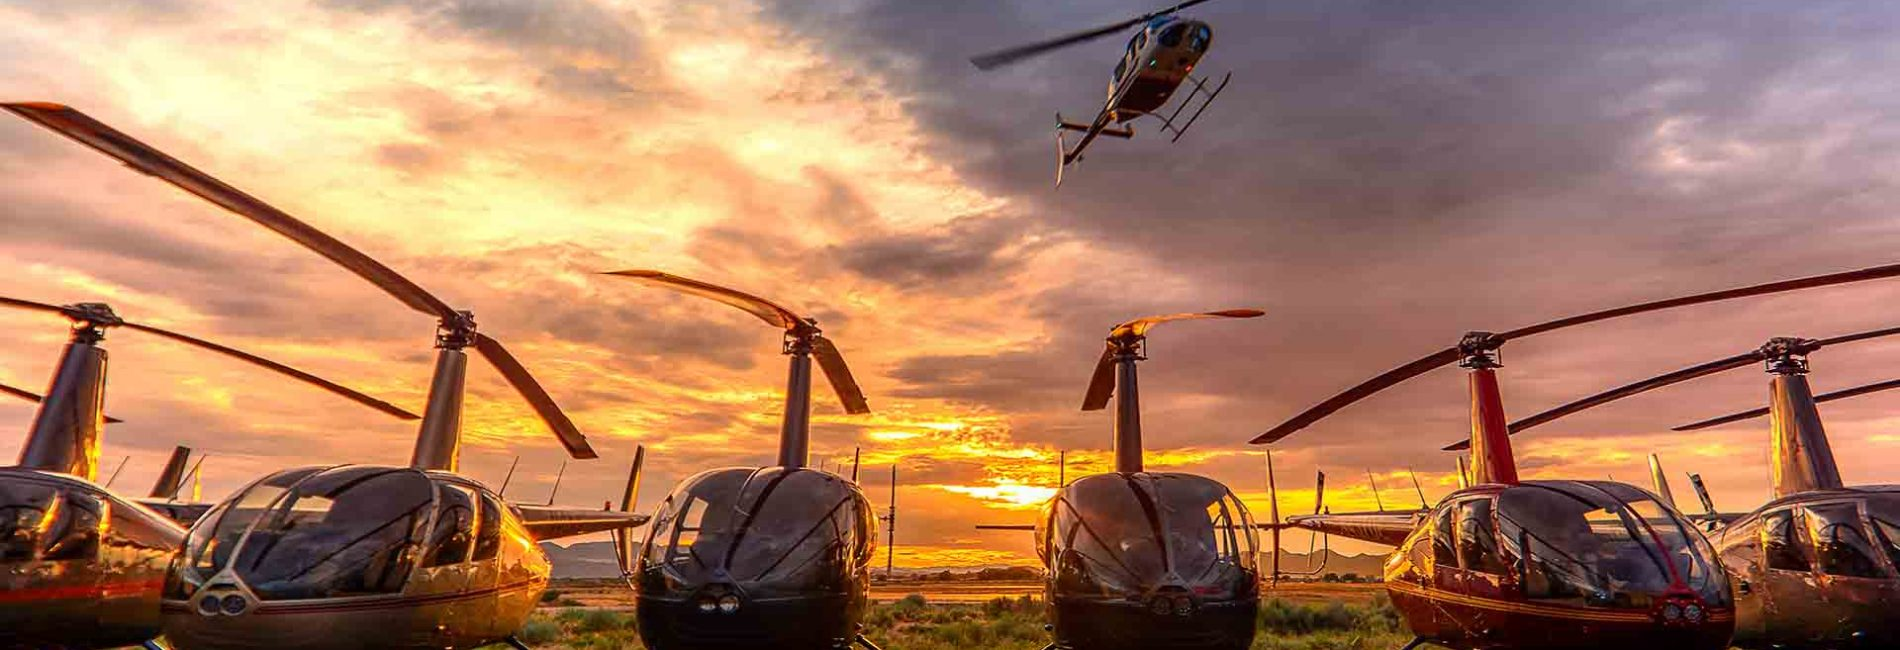 Anything for Hire Acquires HelicopterHire.com domain name